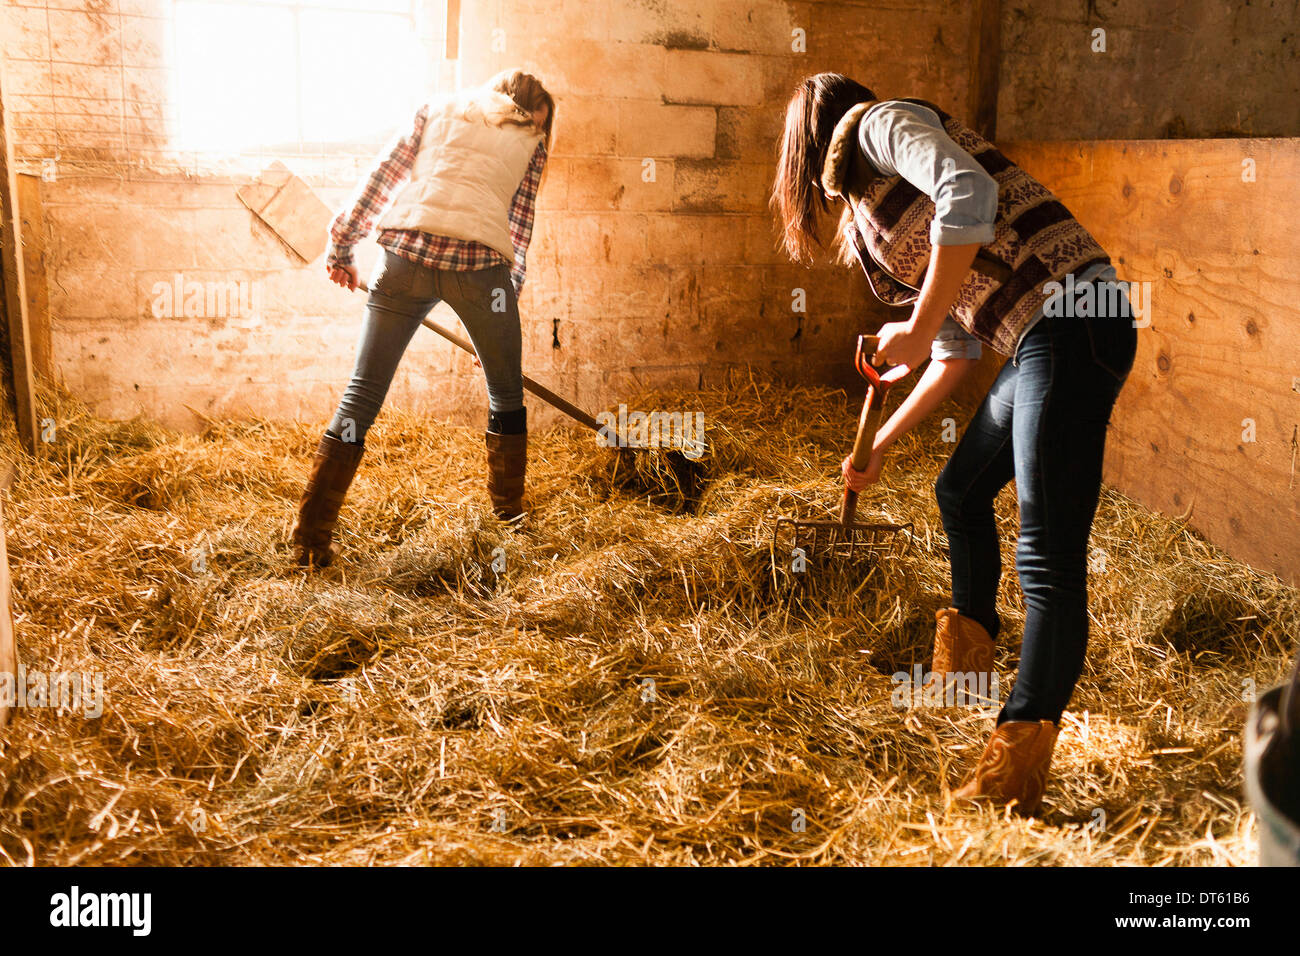 Two young women making straw bed in stable - Stock Image